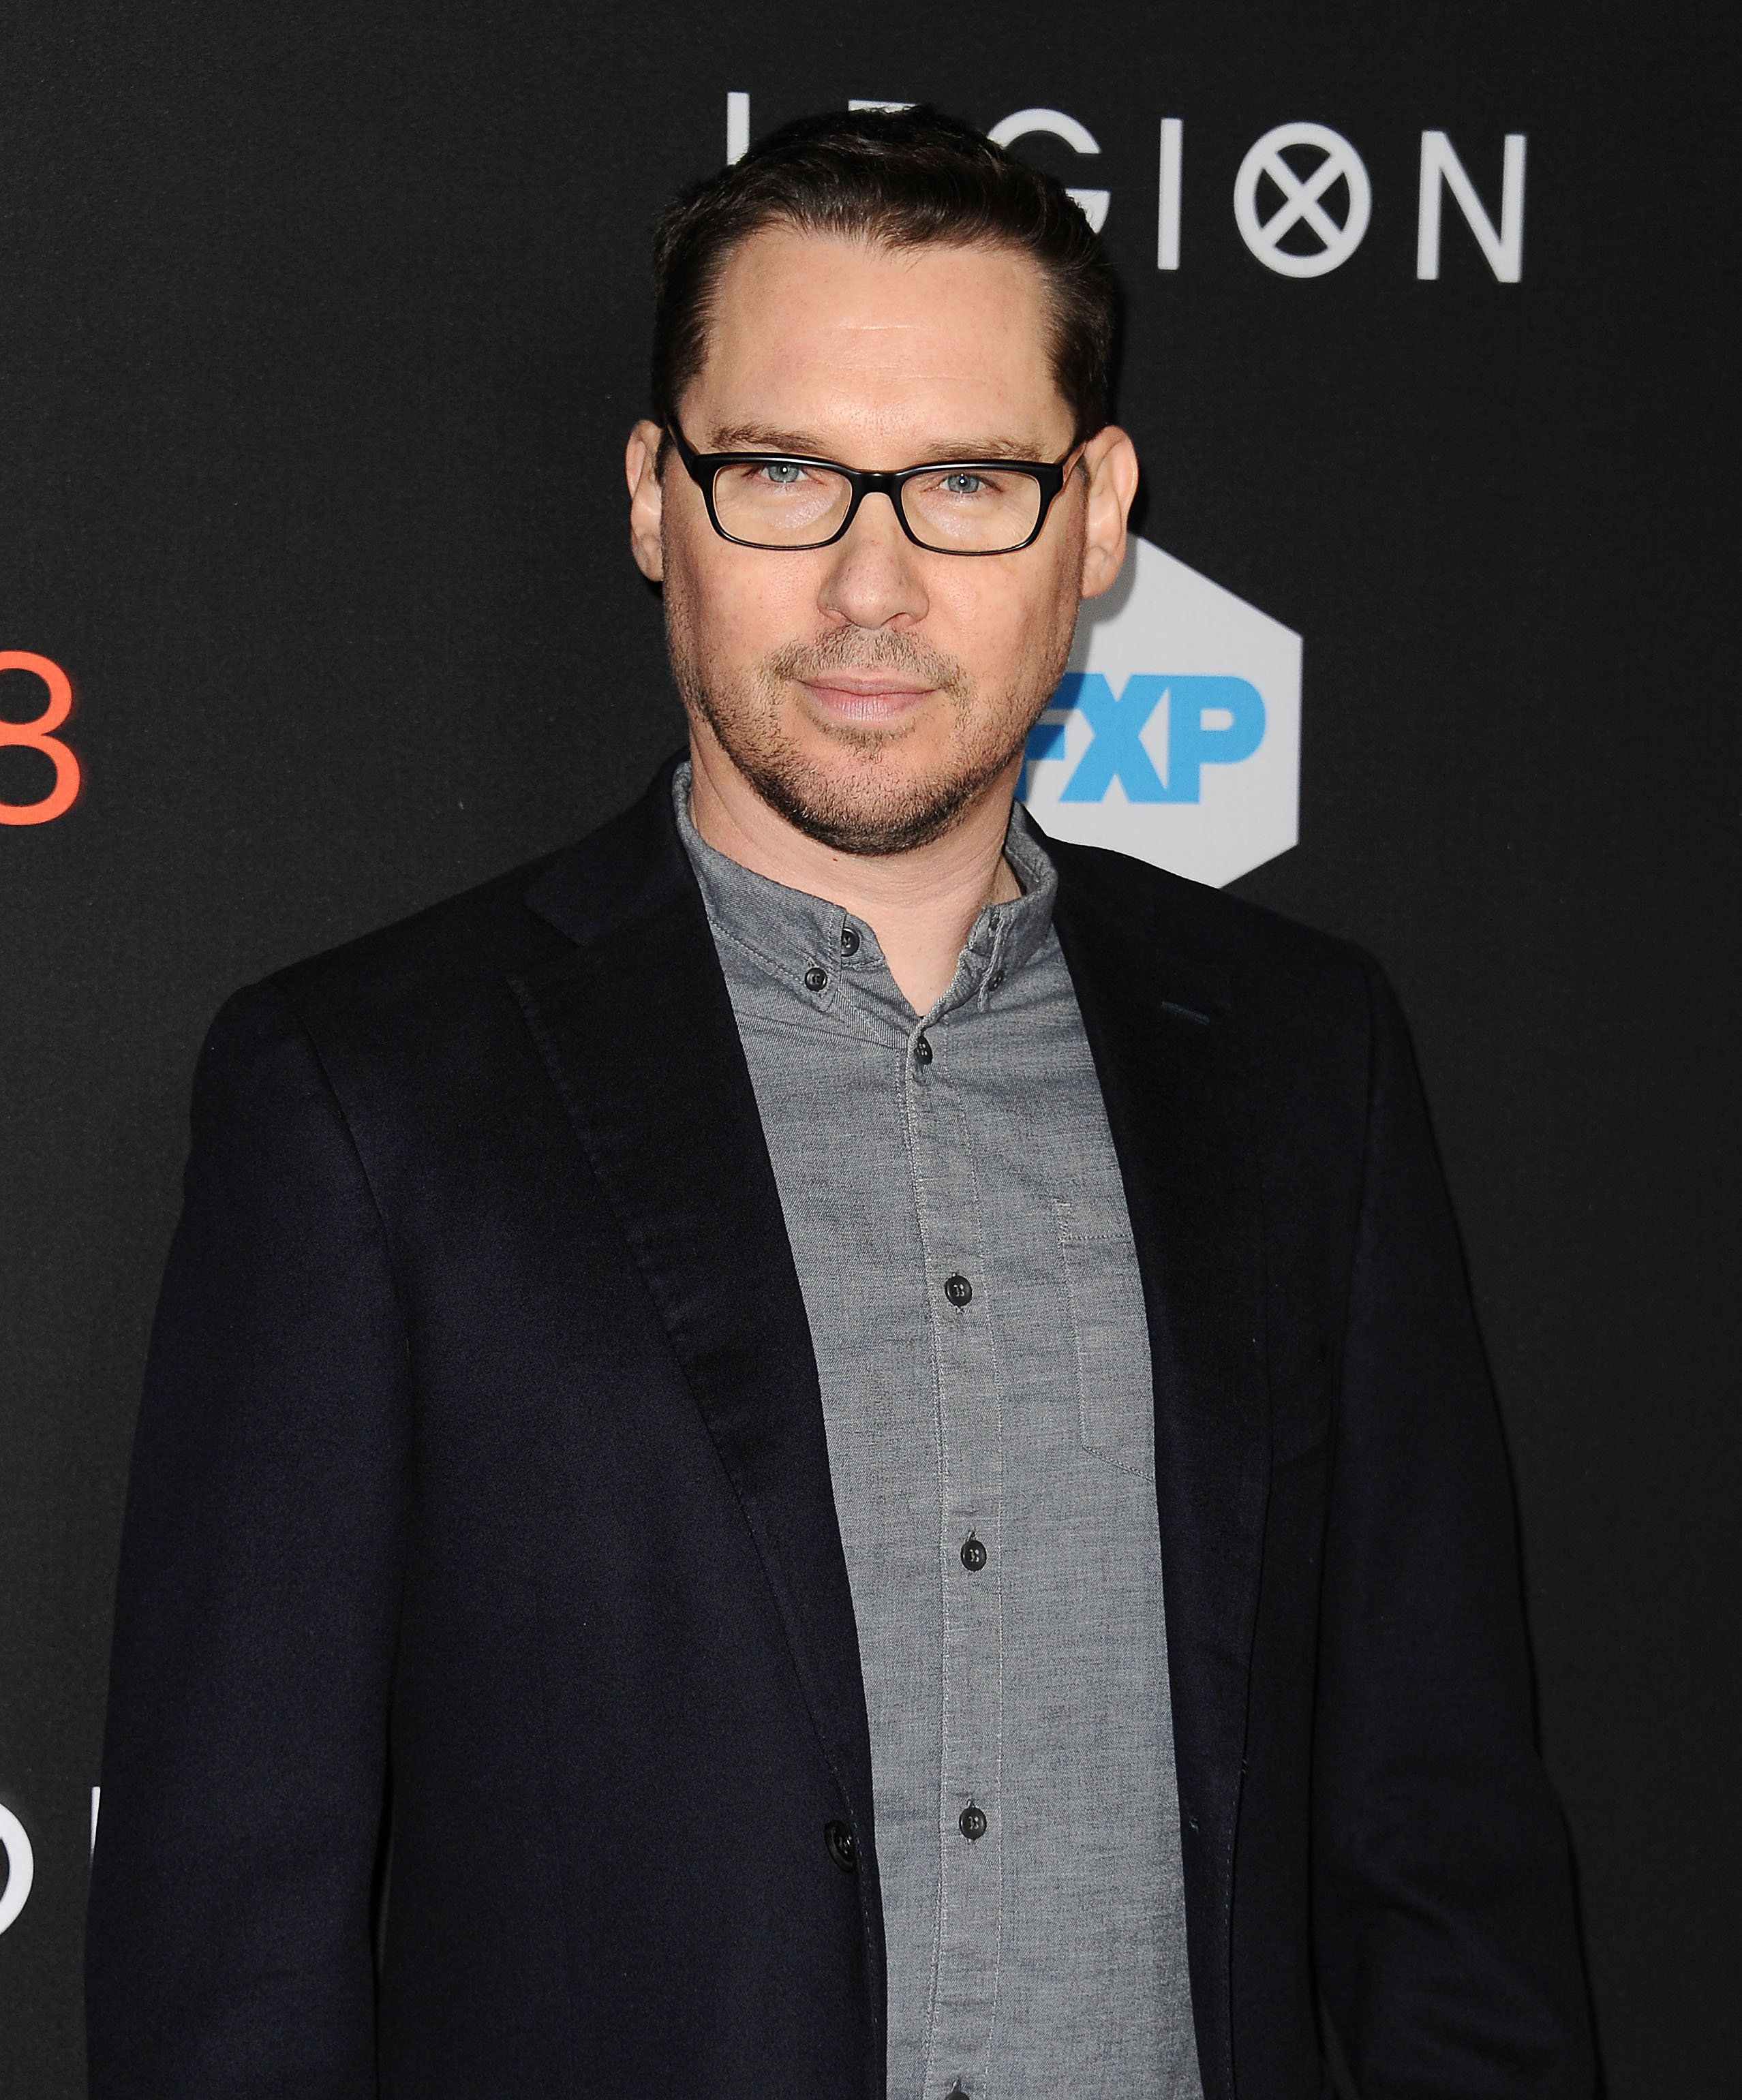 Bryan Singer has denied allegations of sexual assault made against him